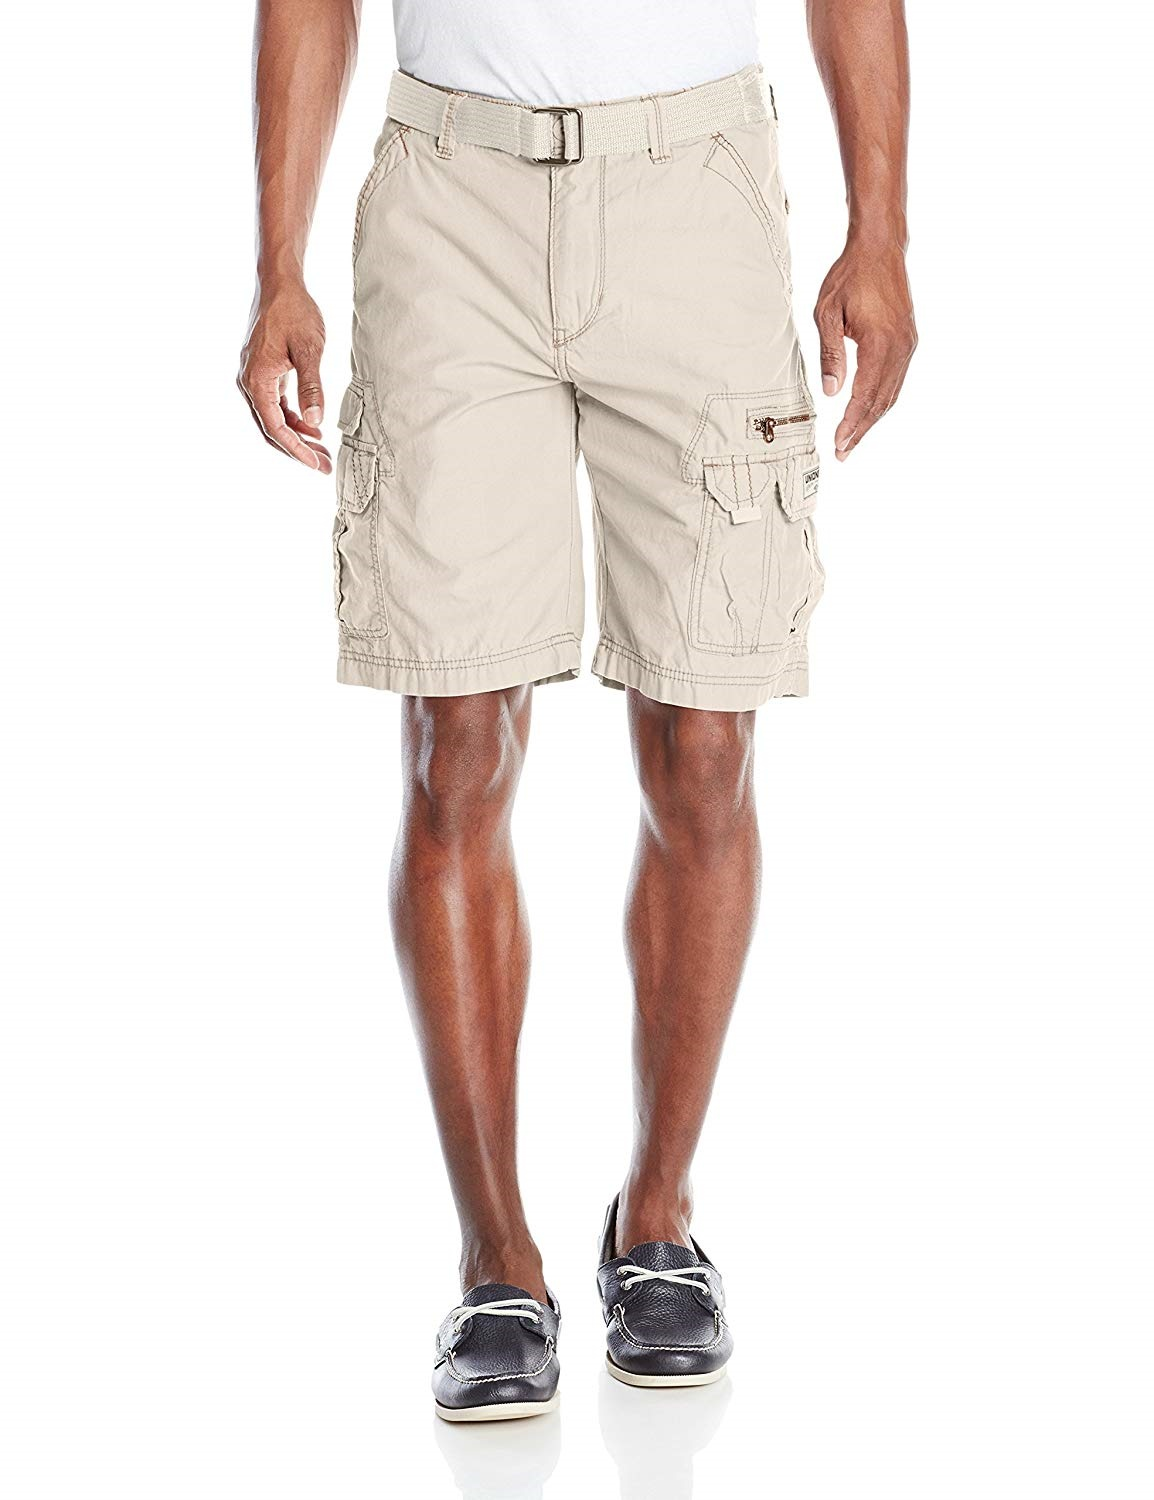 f559bc2ba5 actual size. prev next. UNIONBAY Unionbay Mens Bailey Belted Cargo Short